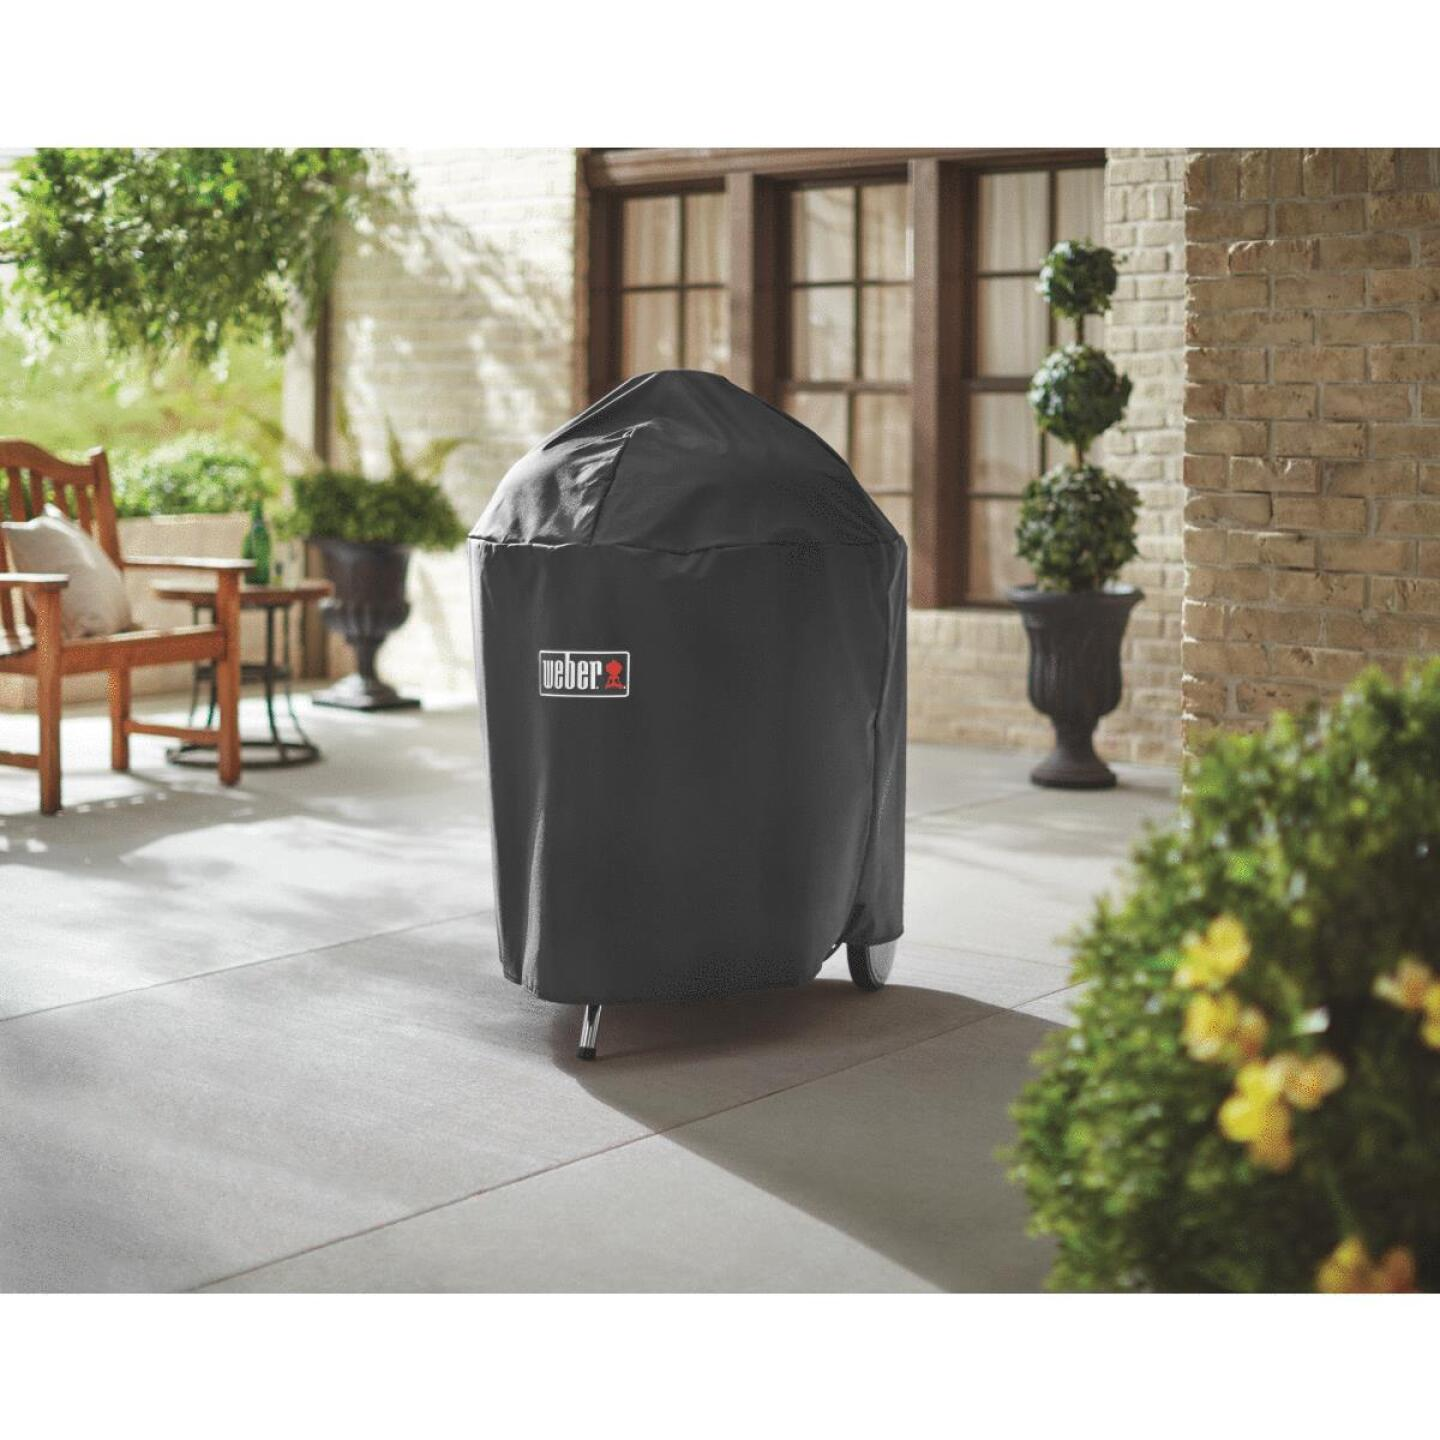 Weber Premium 31.5 In. Black Polyester Kettle Grill Cover Image 2